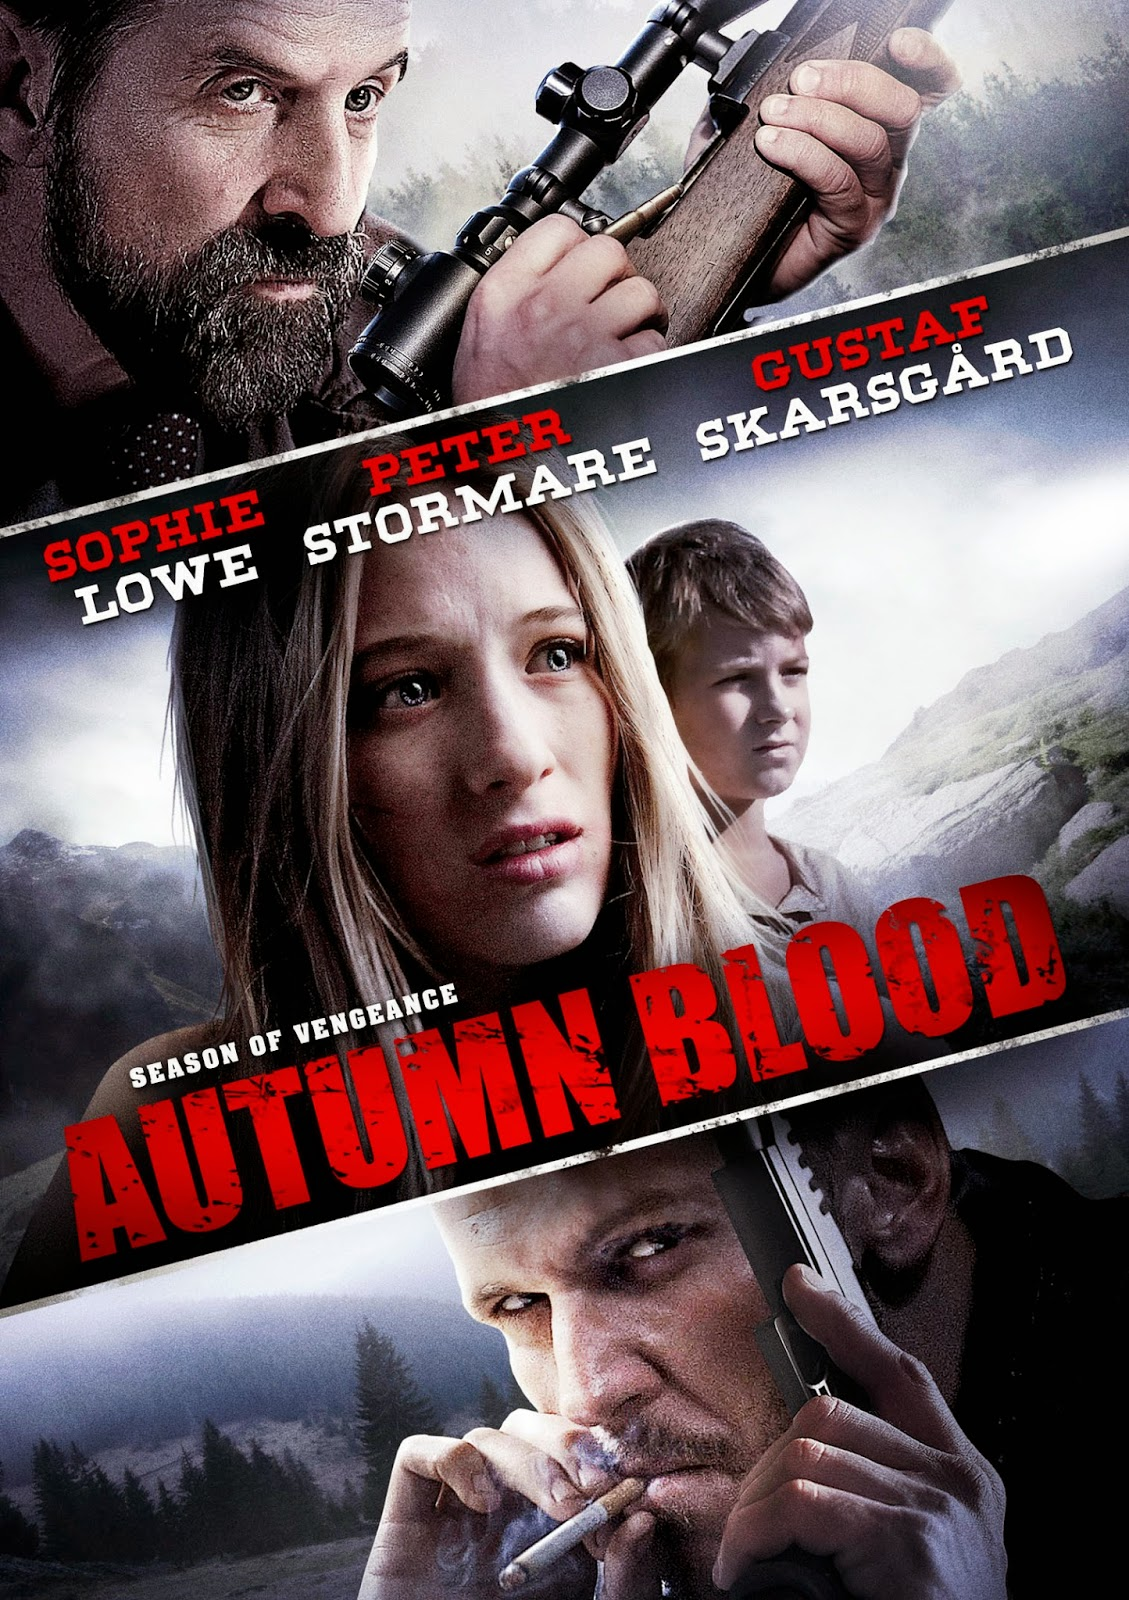 DVD Review - Autumn Blood